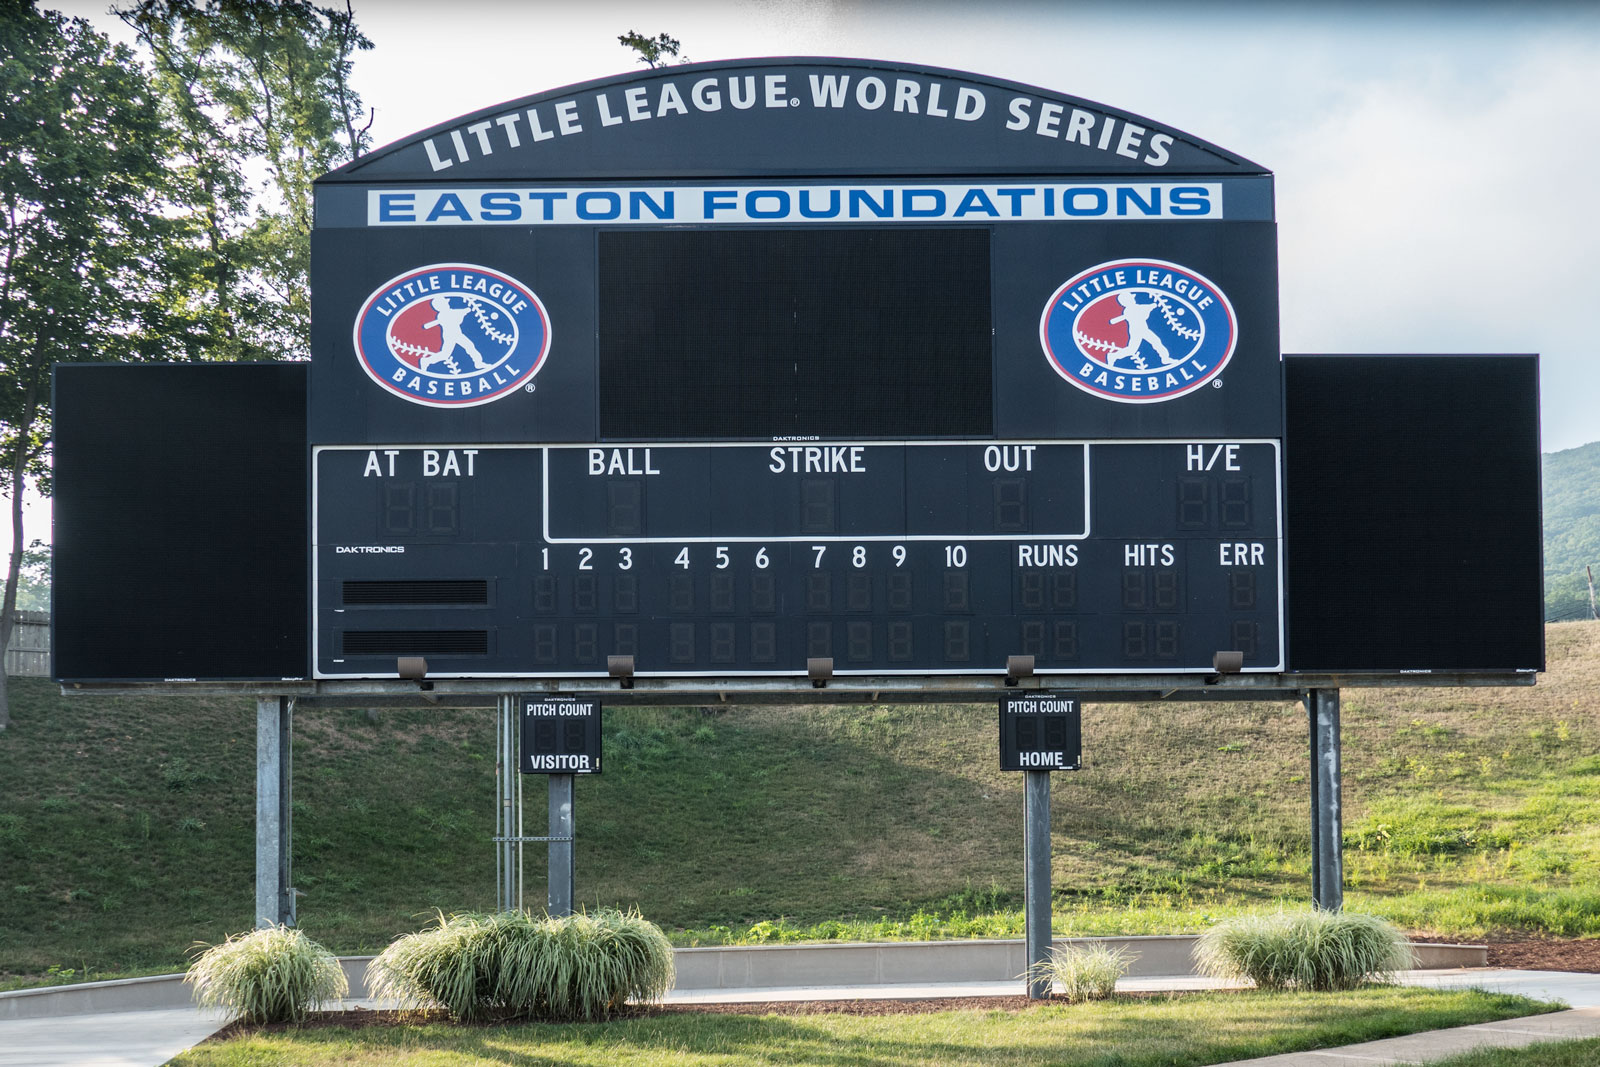 Easton Foundations Scoreboard